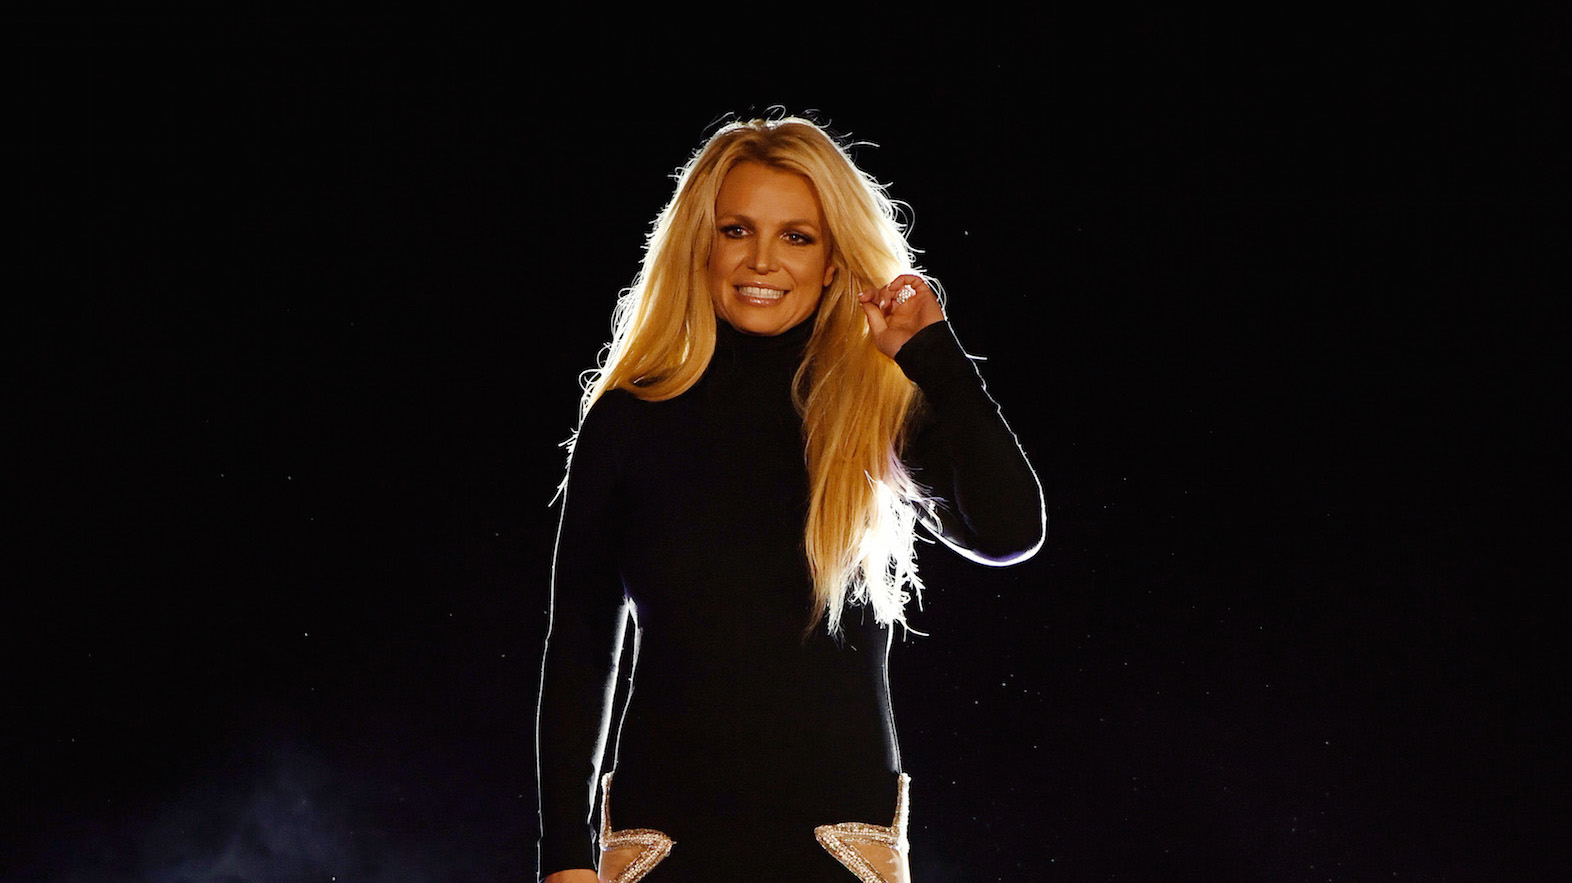 Best britney spears images on pinterest brithney spears 2